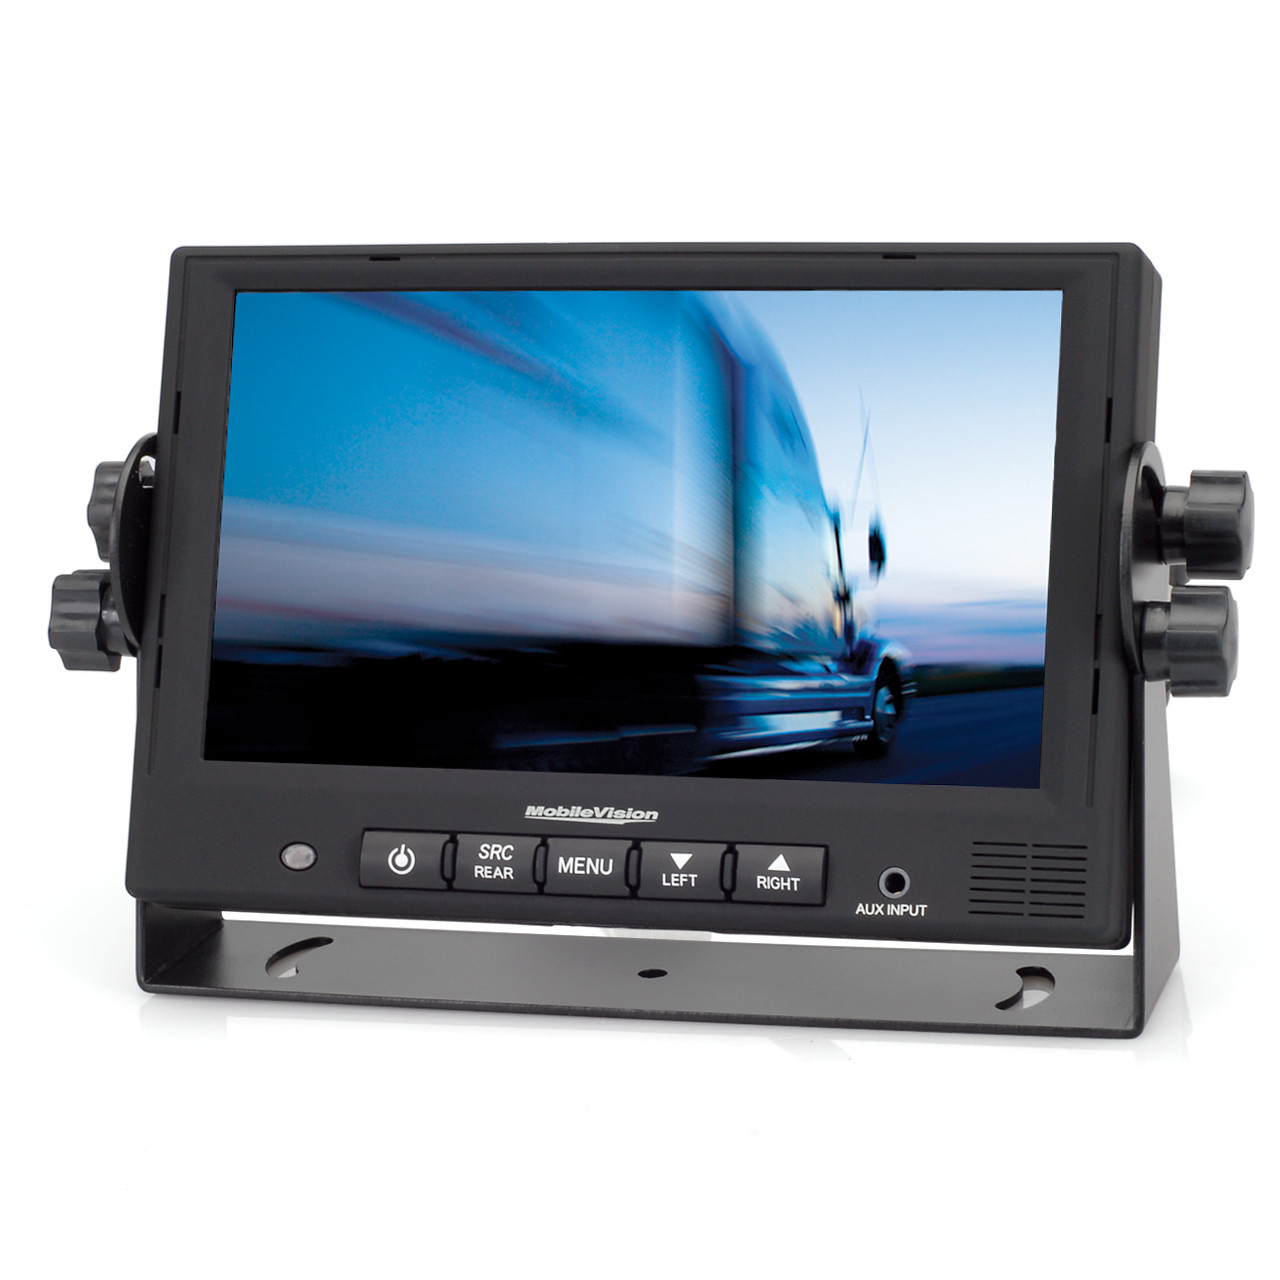 small resolution of mobilevision m130c 7 color lcd safety camera monitor front view